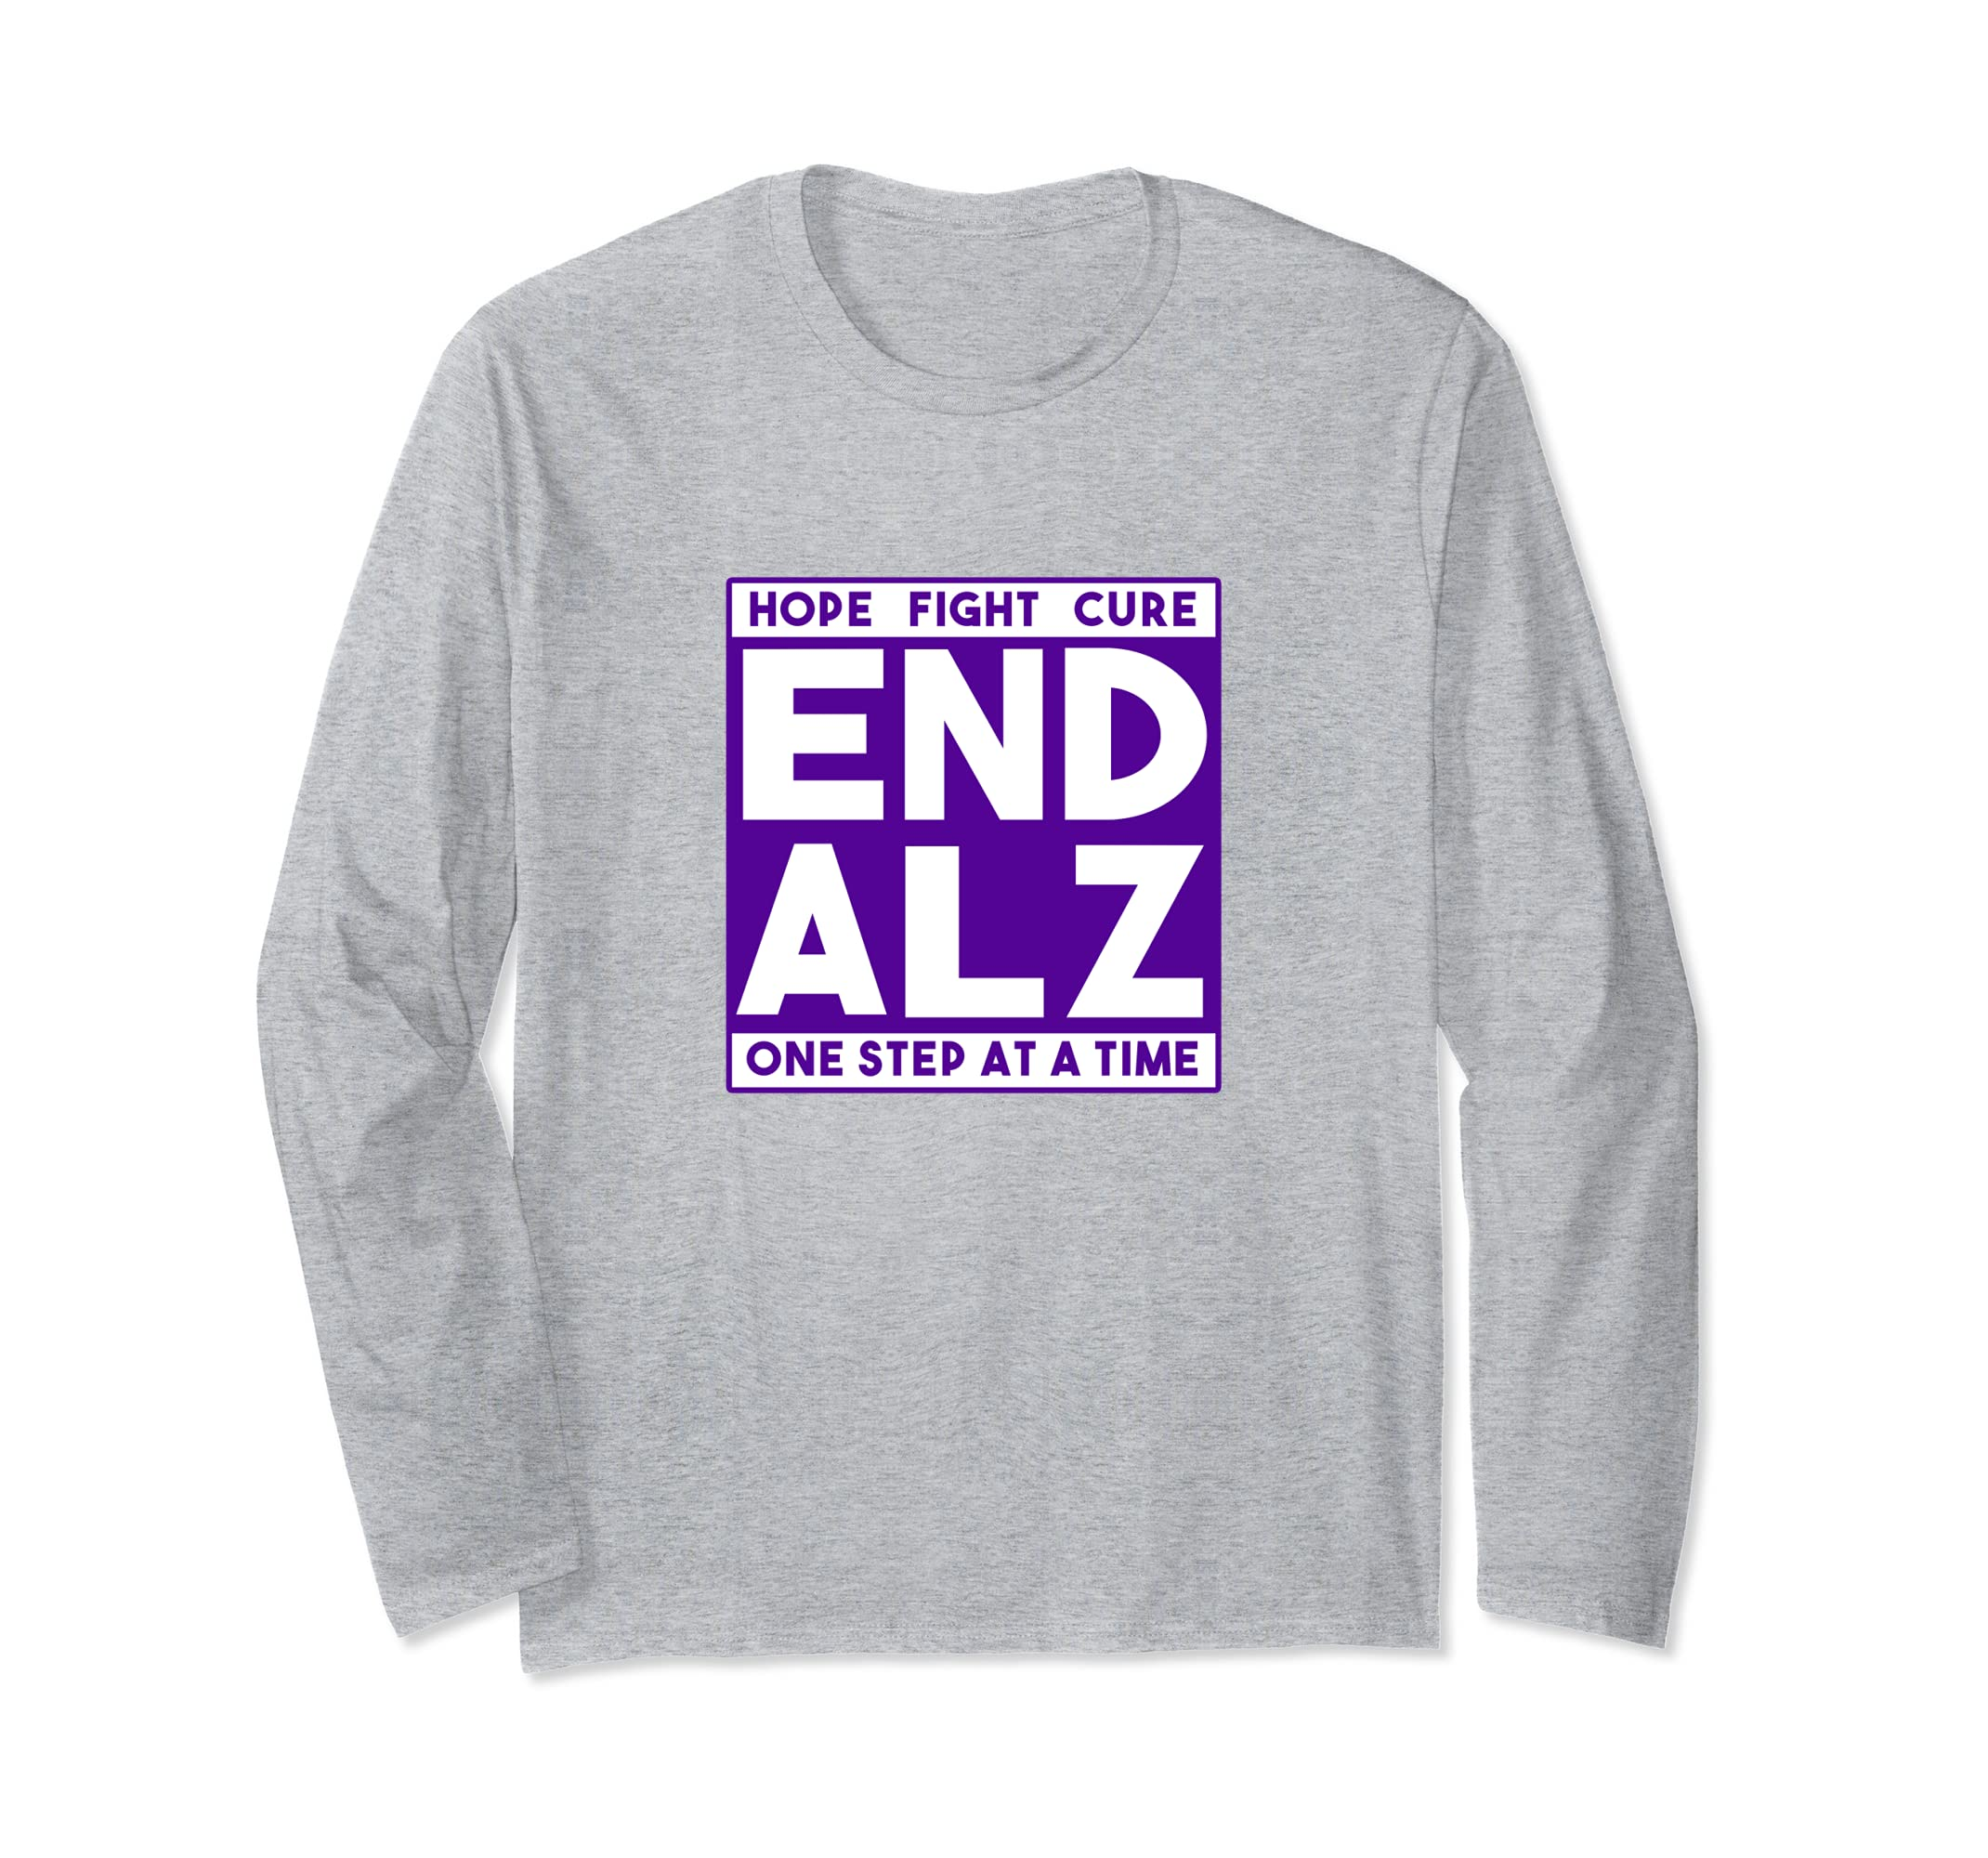 Alzheimers Walk Long Sleeve T Shirt Hope Fight Cure-azvn